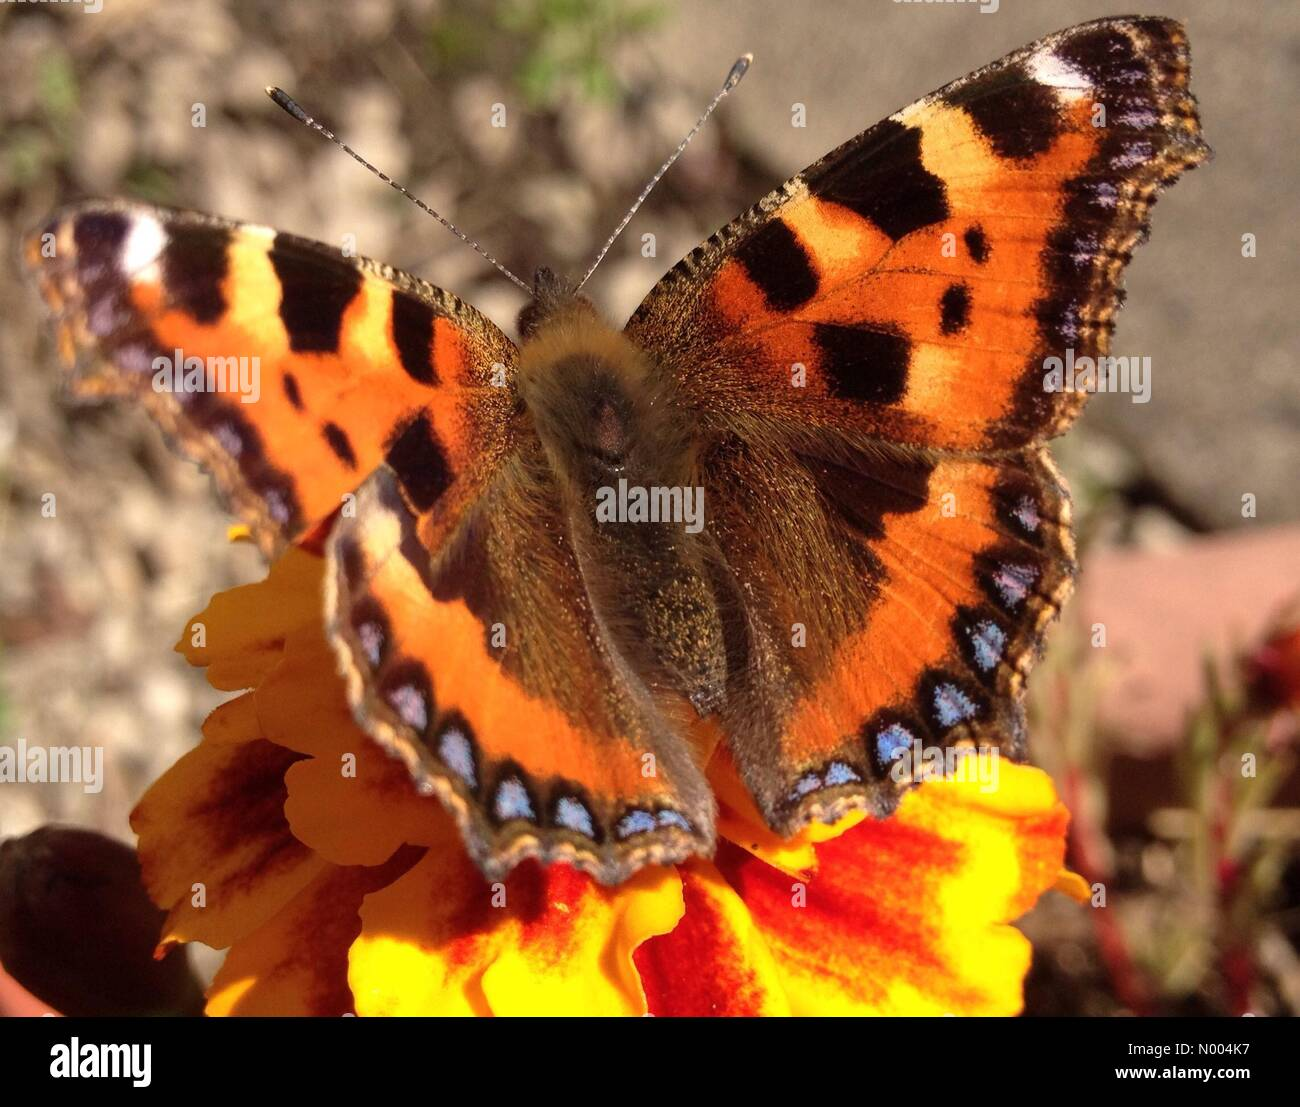 UK weather - A sunny day in Leeds, West Yorkshire. This small tortoiseshell butterfly was enjoying the warmth of - Stock Image